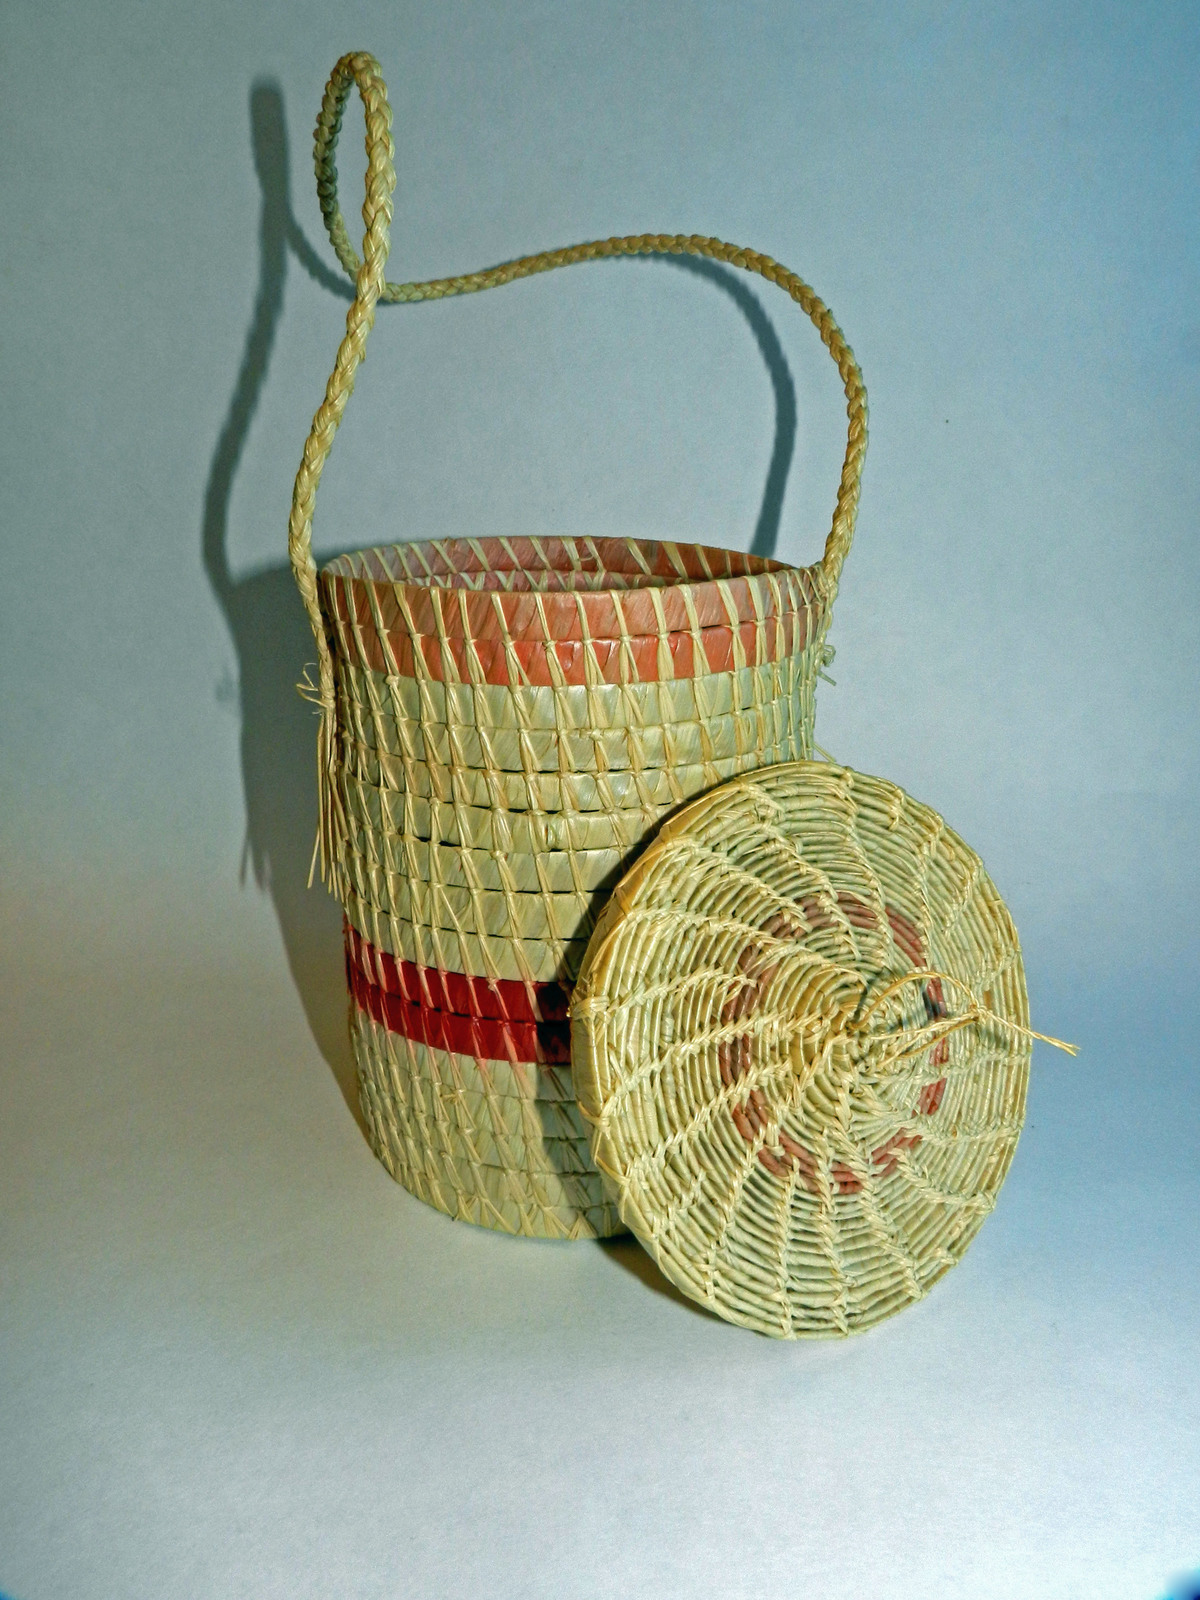 Handmade Cylindrical Palm Fronds Basket and 50 similar items